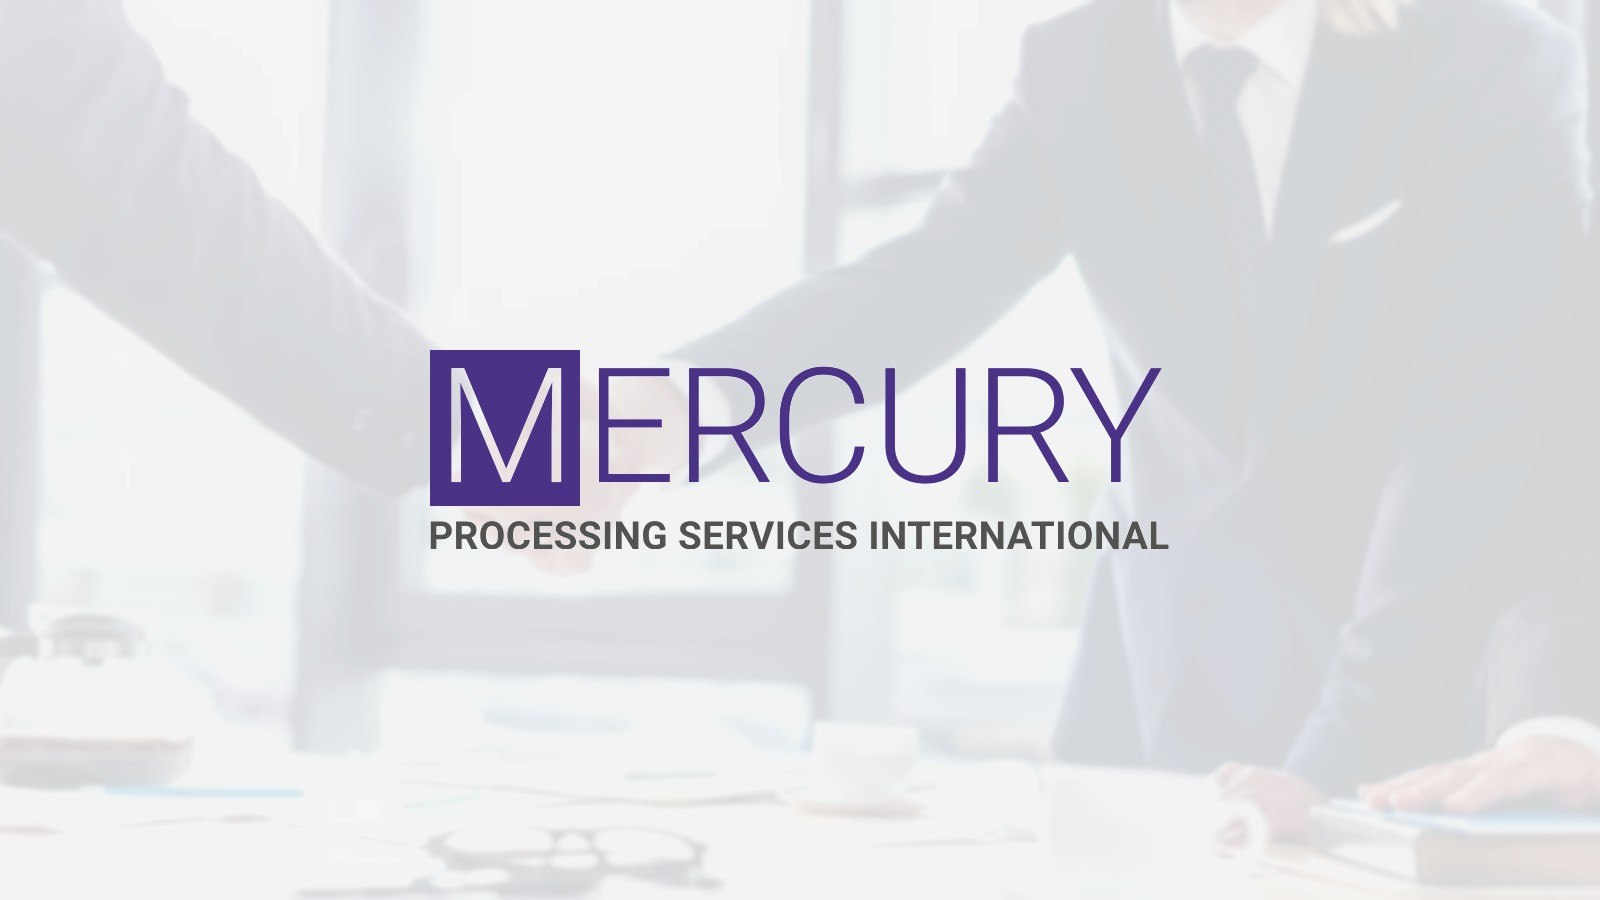 Mercury Processing Services International Chooses comforte AG for Enterprise Data Security